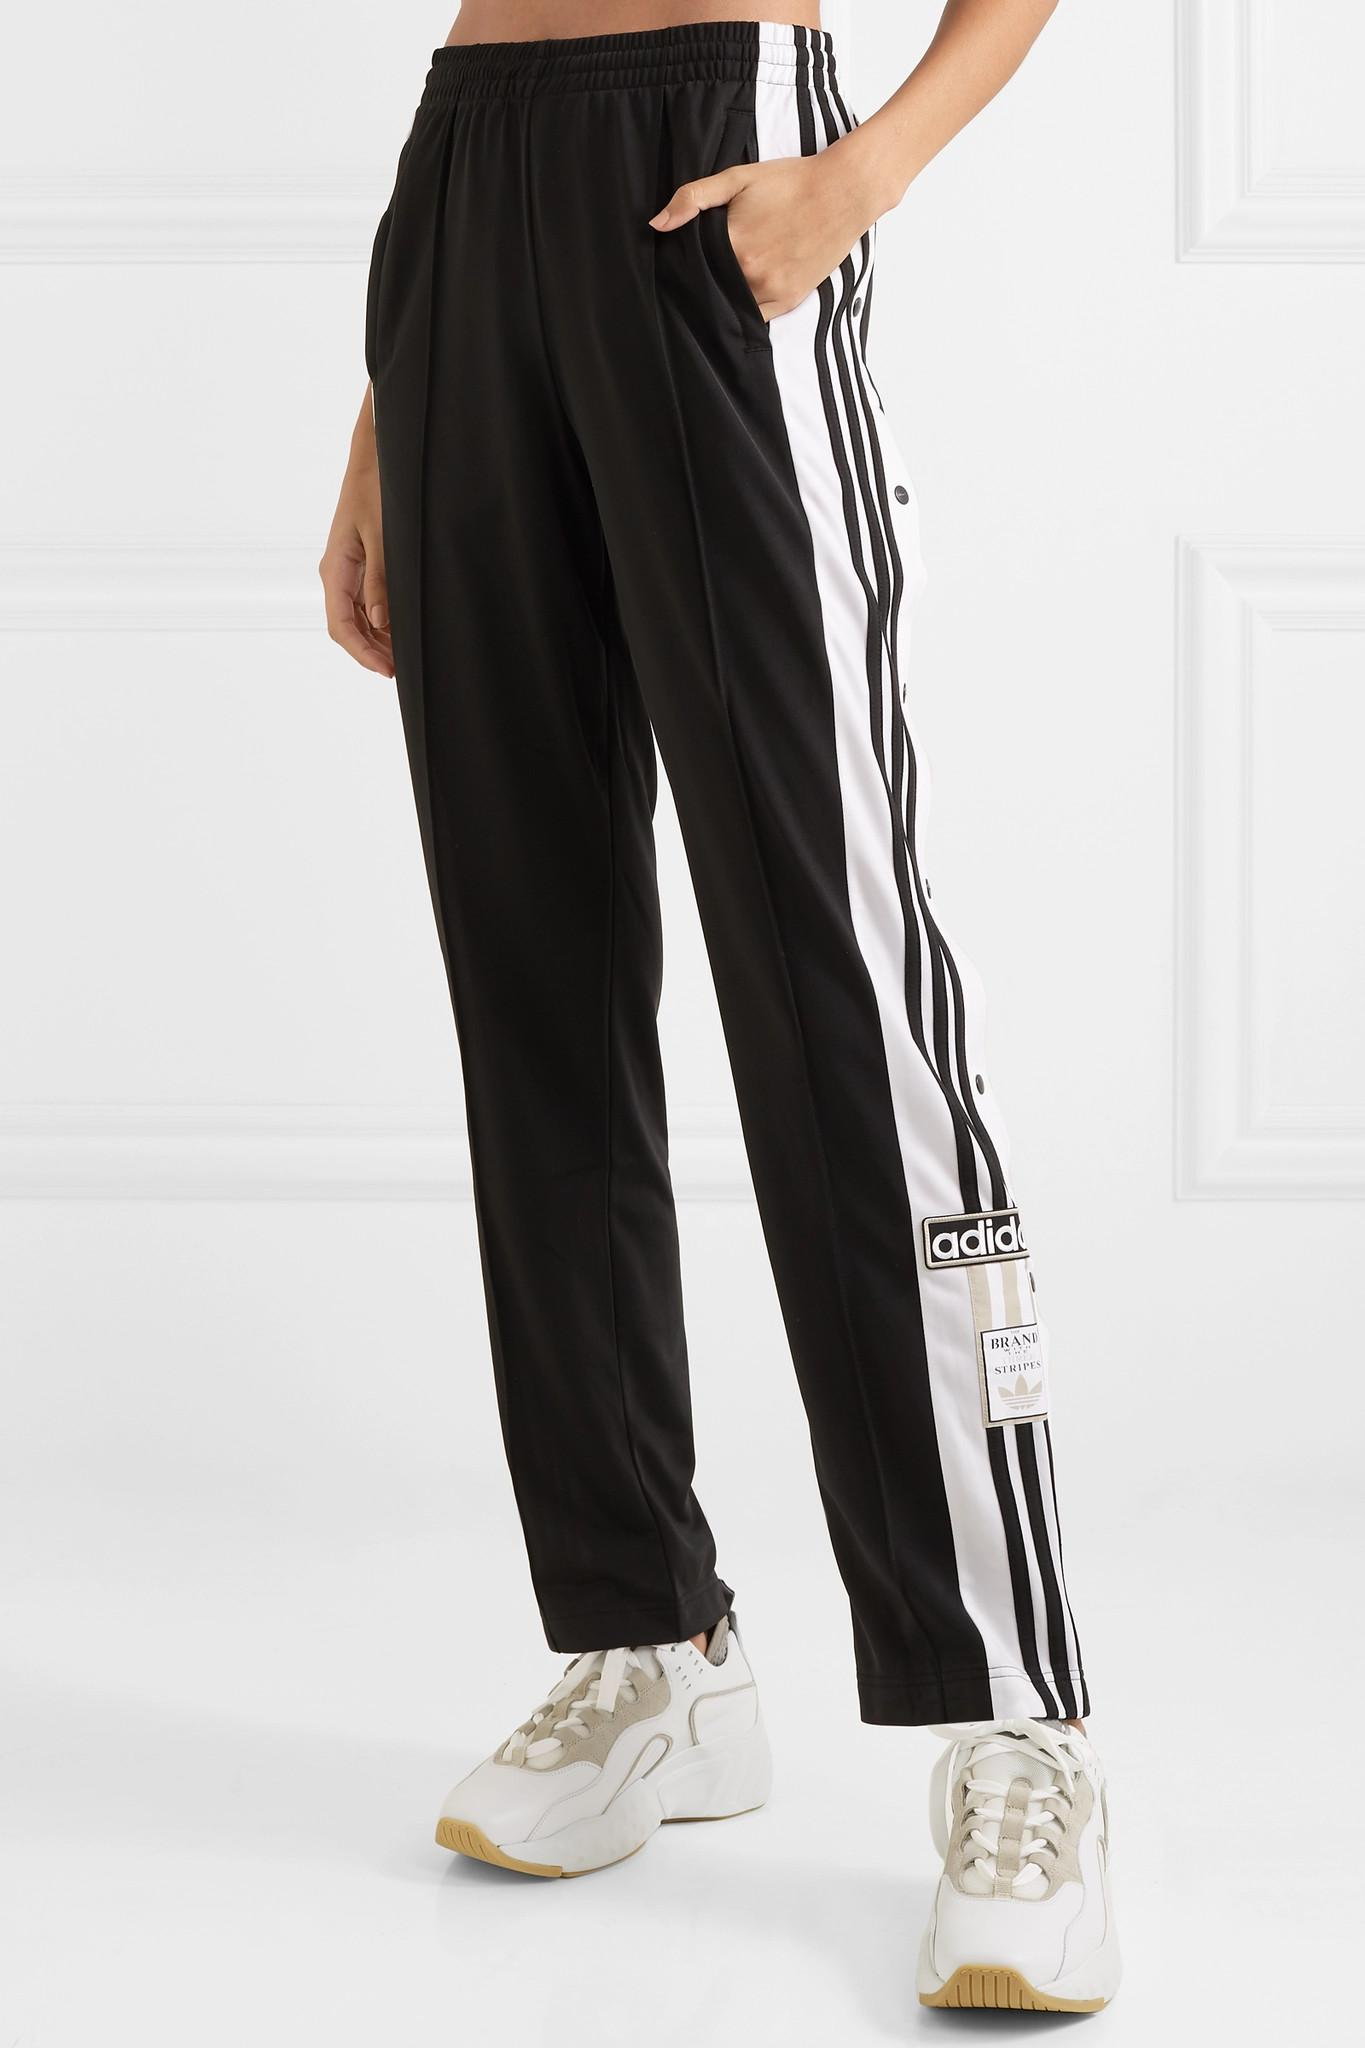 33d37ed8531d adidas Originals Originals Adibreak Track Pants in Black - Save 18 ...